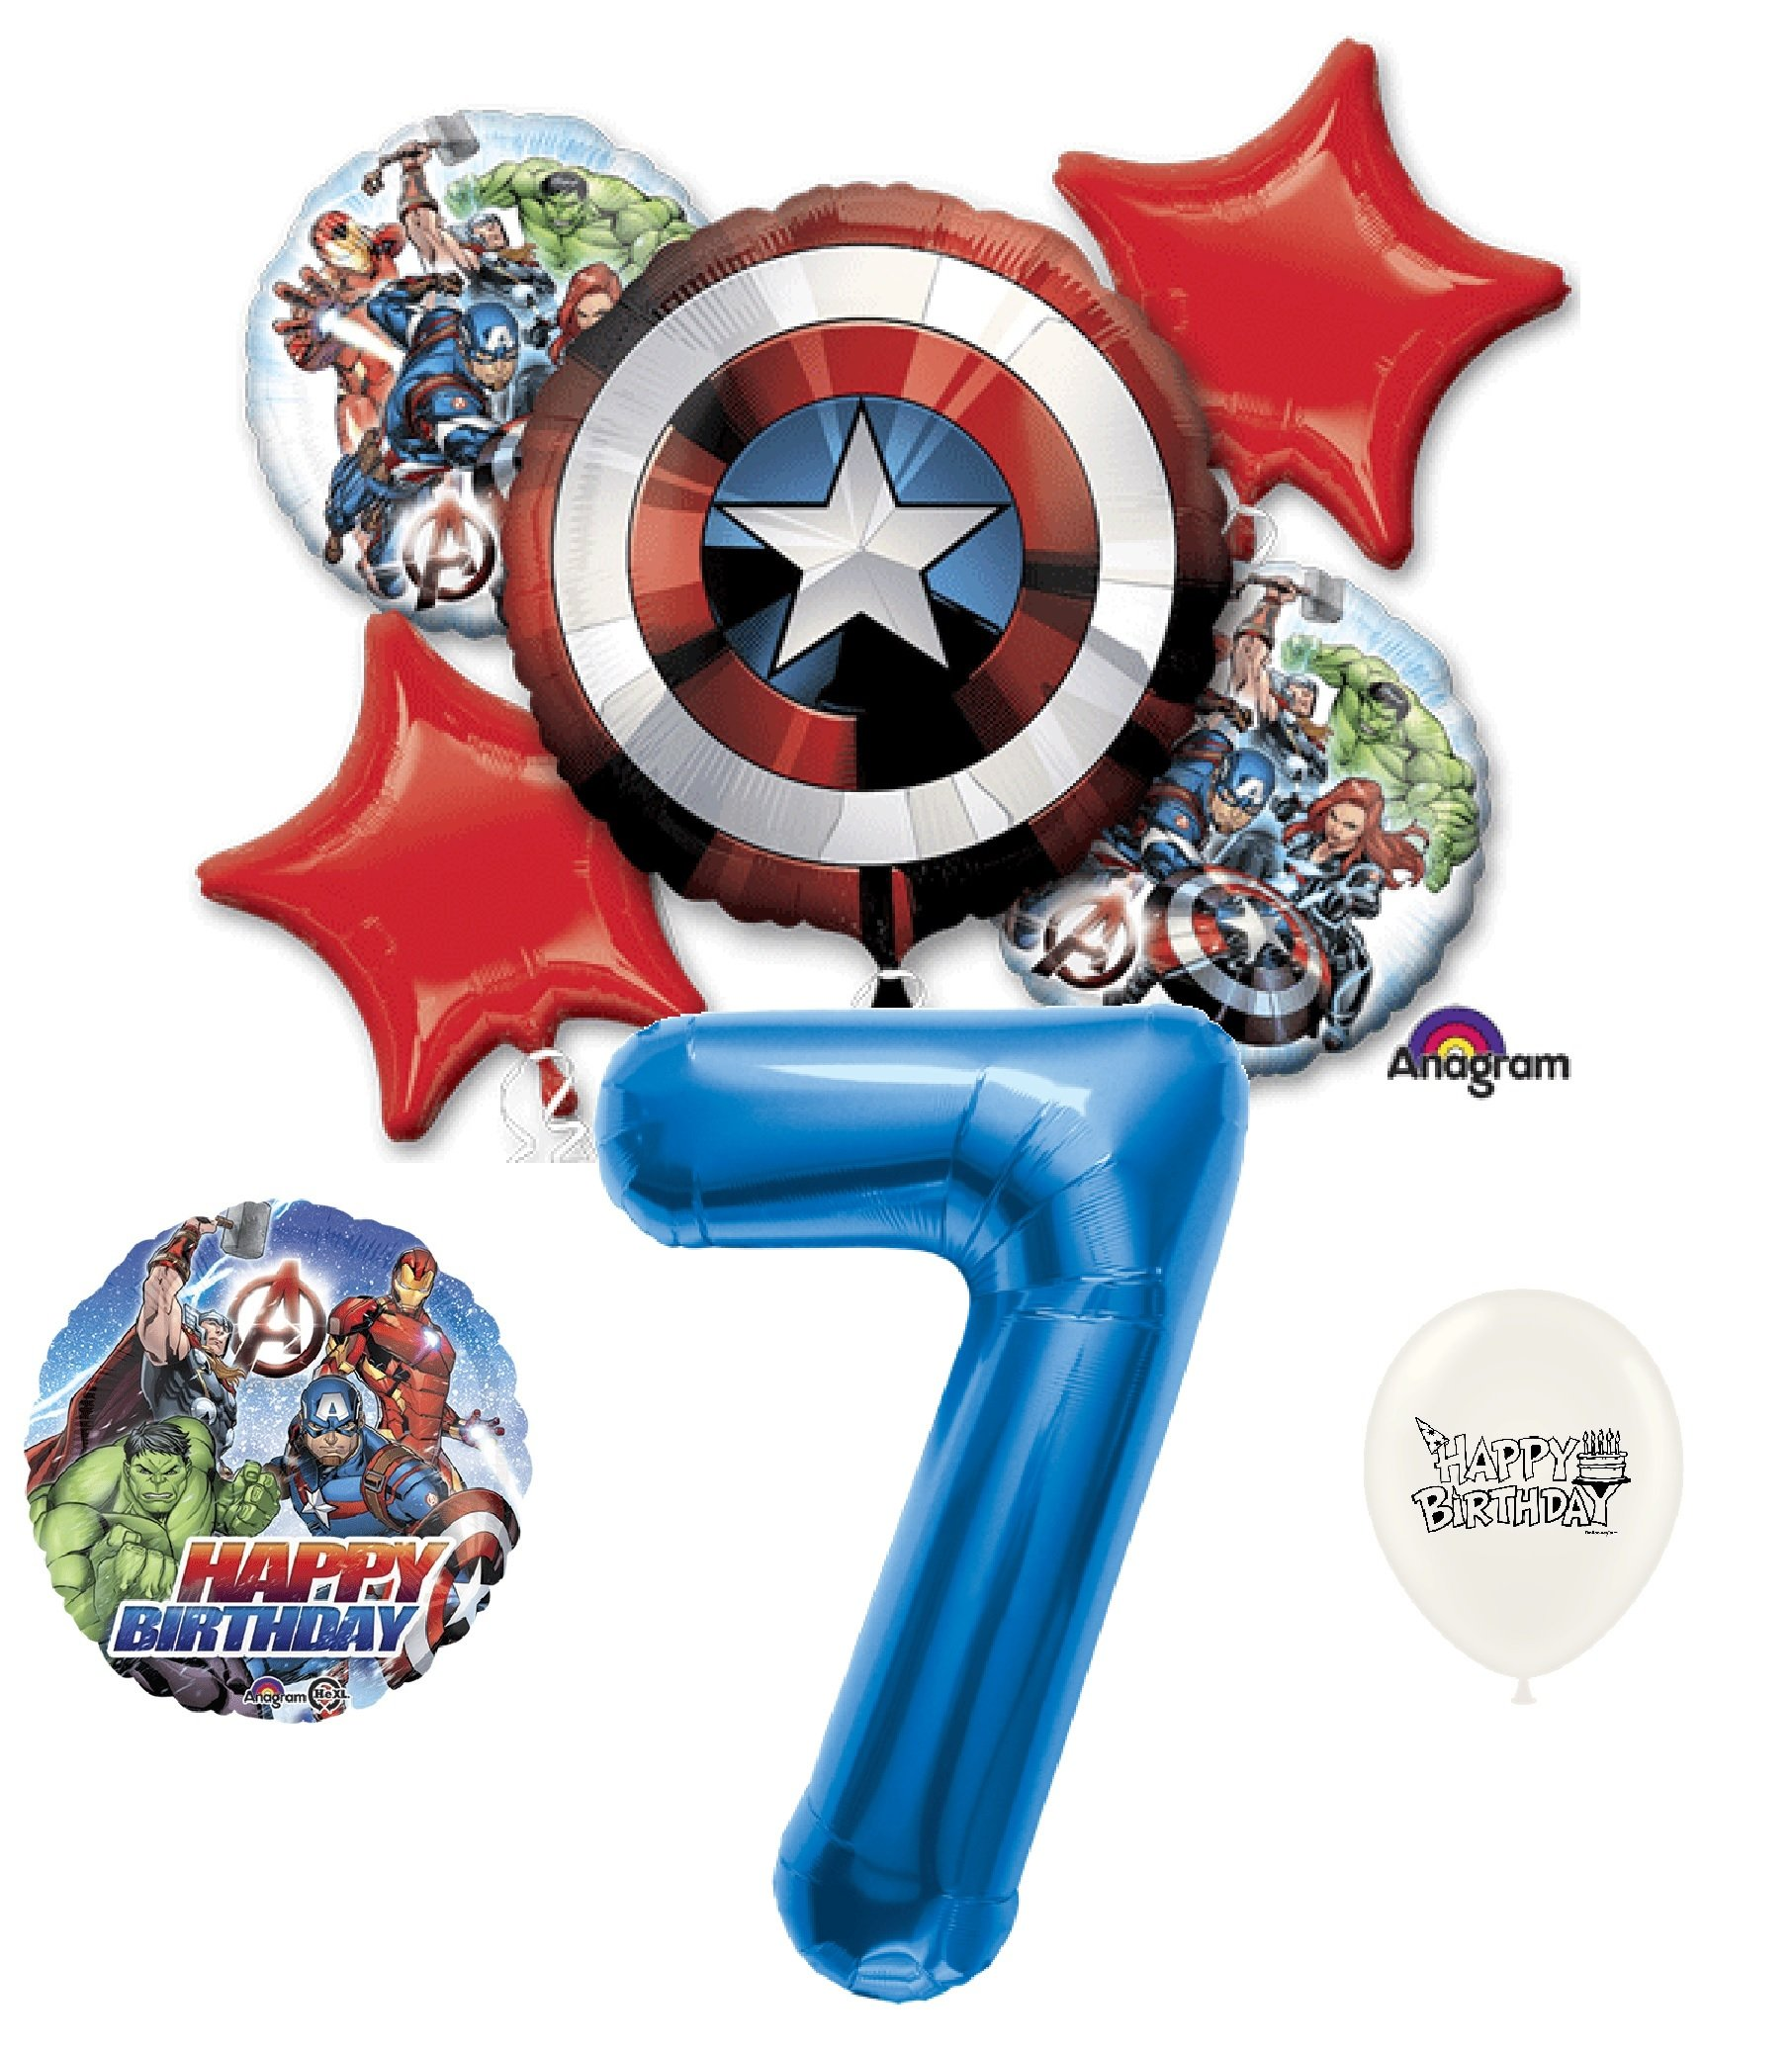 7th Birthday Blue Number Avengers Captain America Shield Balloons Bouquet Bundle